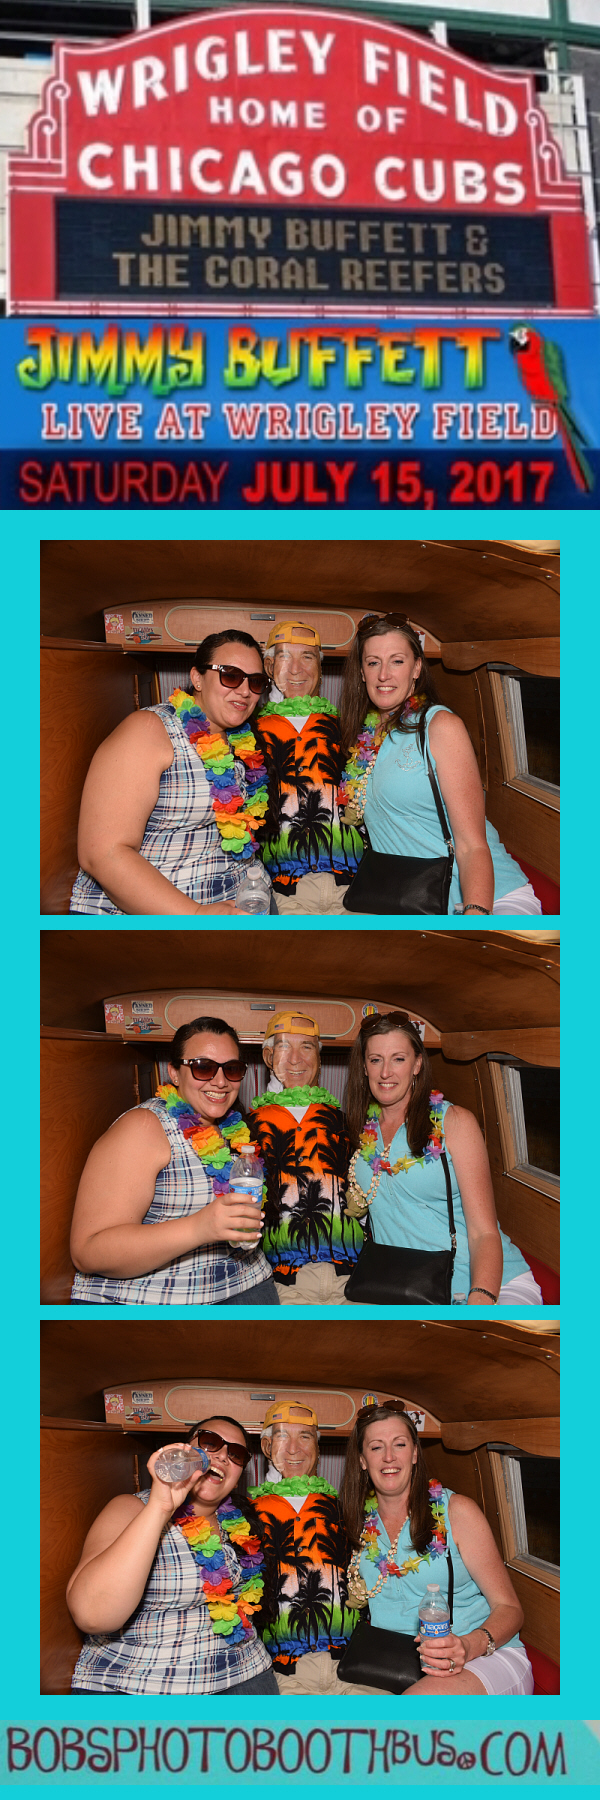 Jimmy Buffett final photo strip graphic_60.jpg